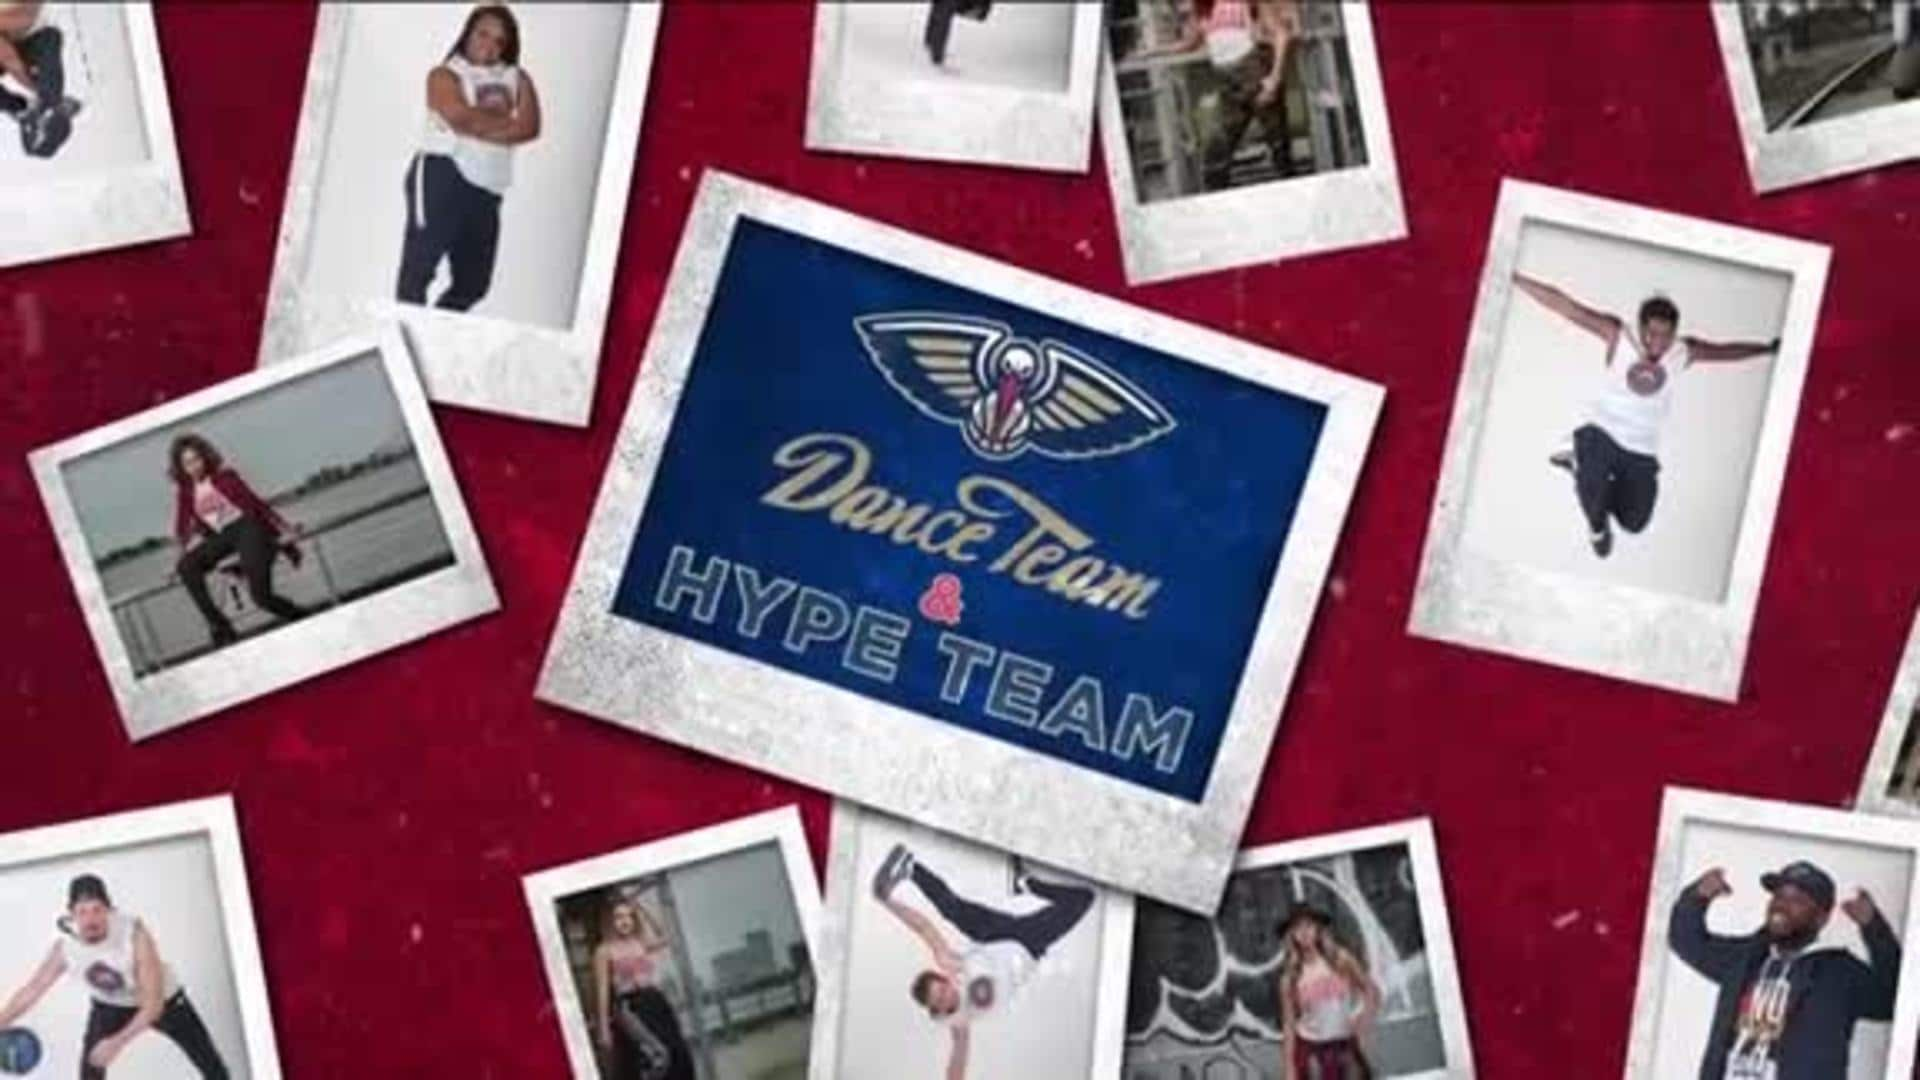 Entertainment: Pelicans Dance & Hype Team 3rd quarter performance - February 13 vs. Oklahoma City Thunder